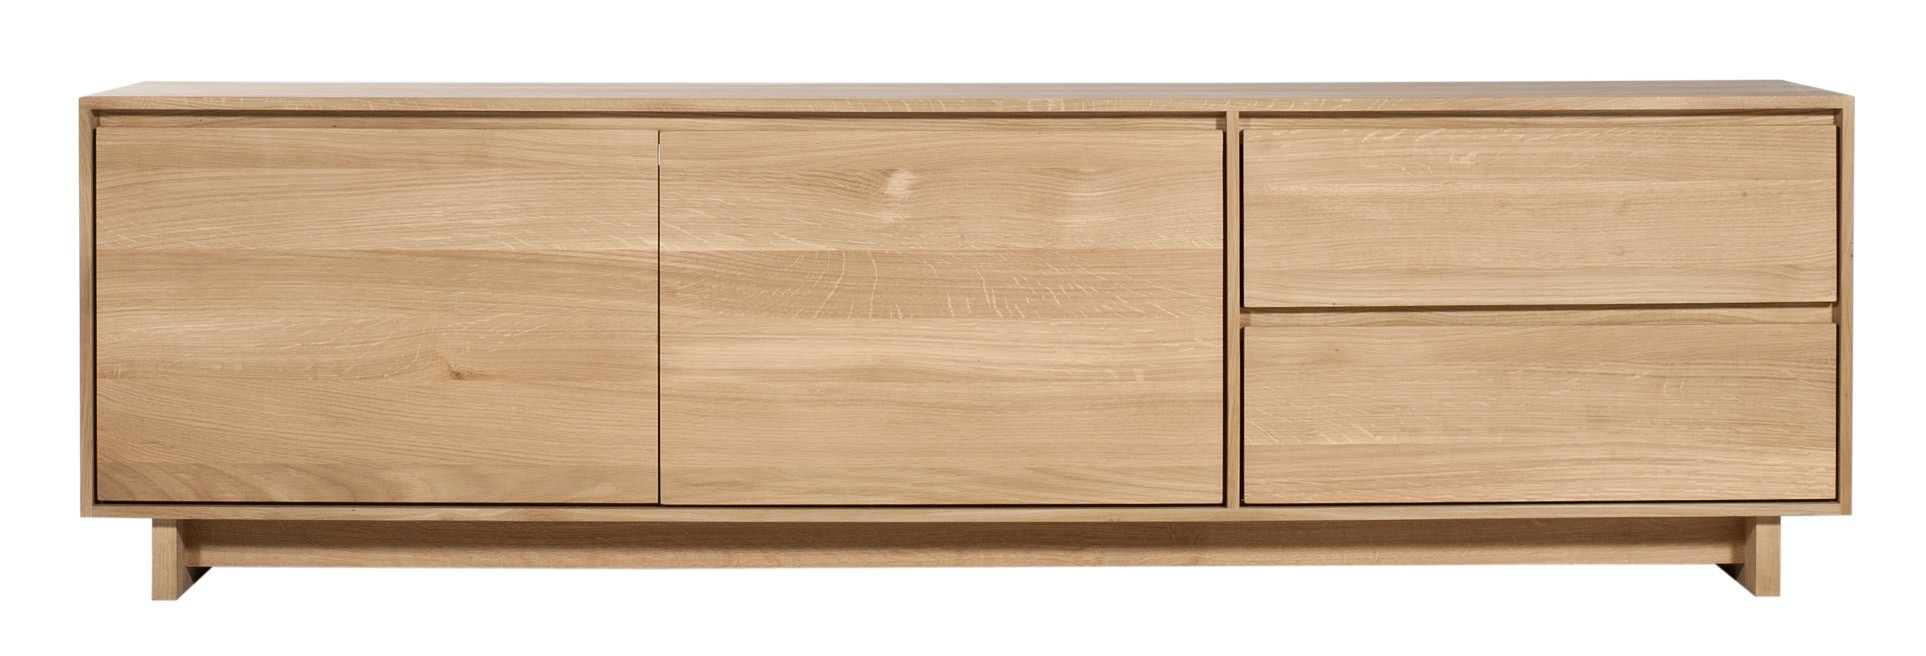 Meuble Tv Oak Wave D Ethnicraft 2 Porte 1 Porte Abattante 1  # Meuble Bas Tv Chene